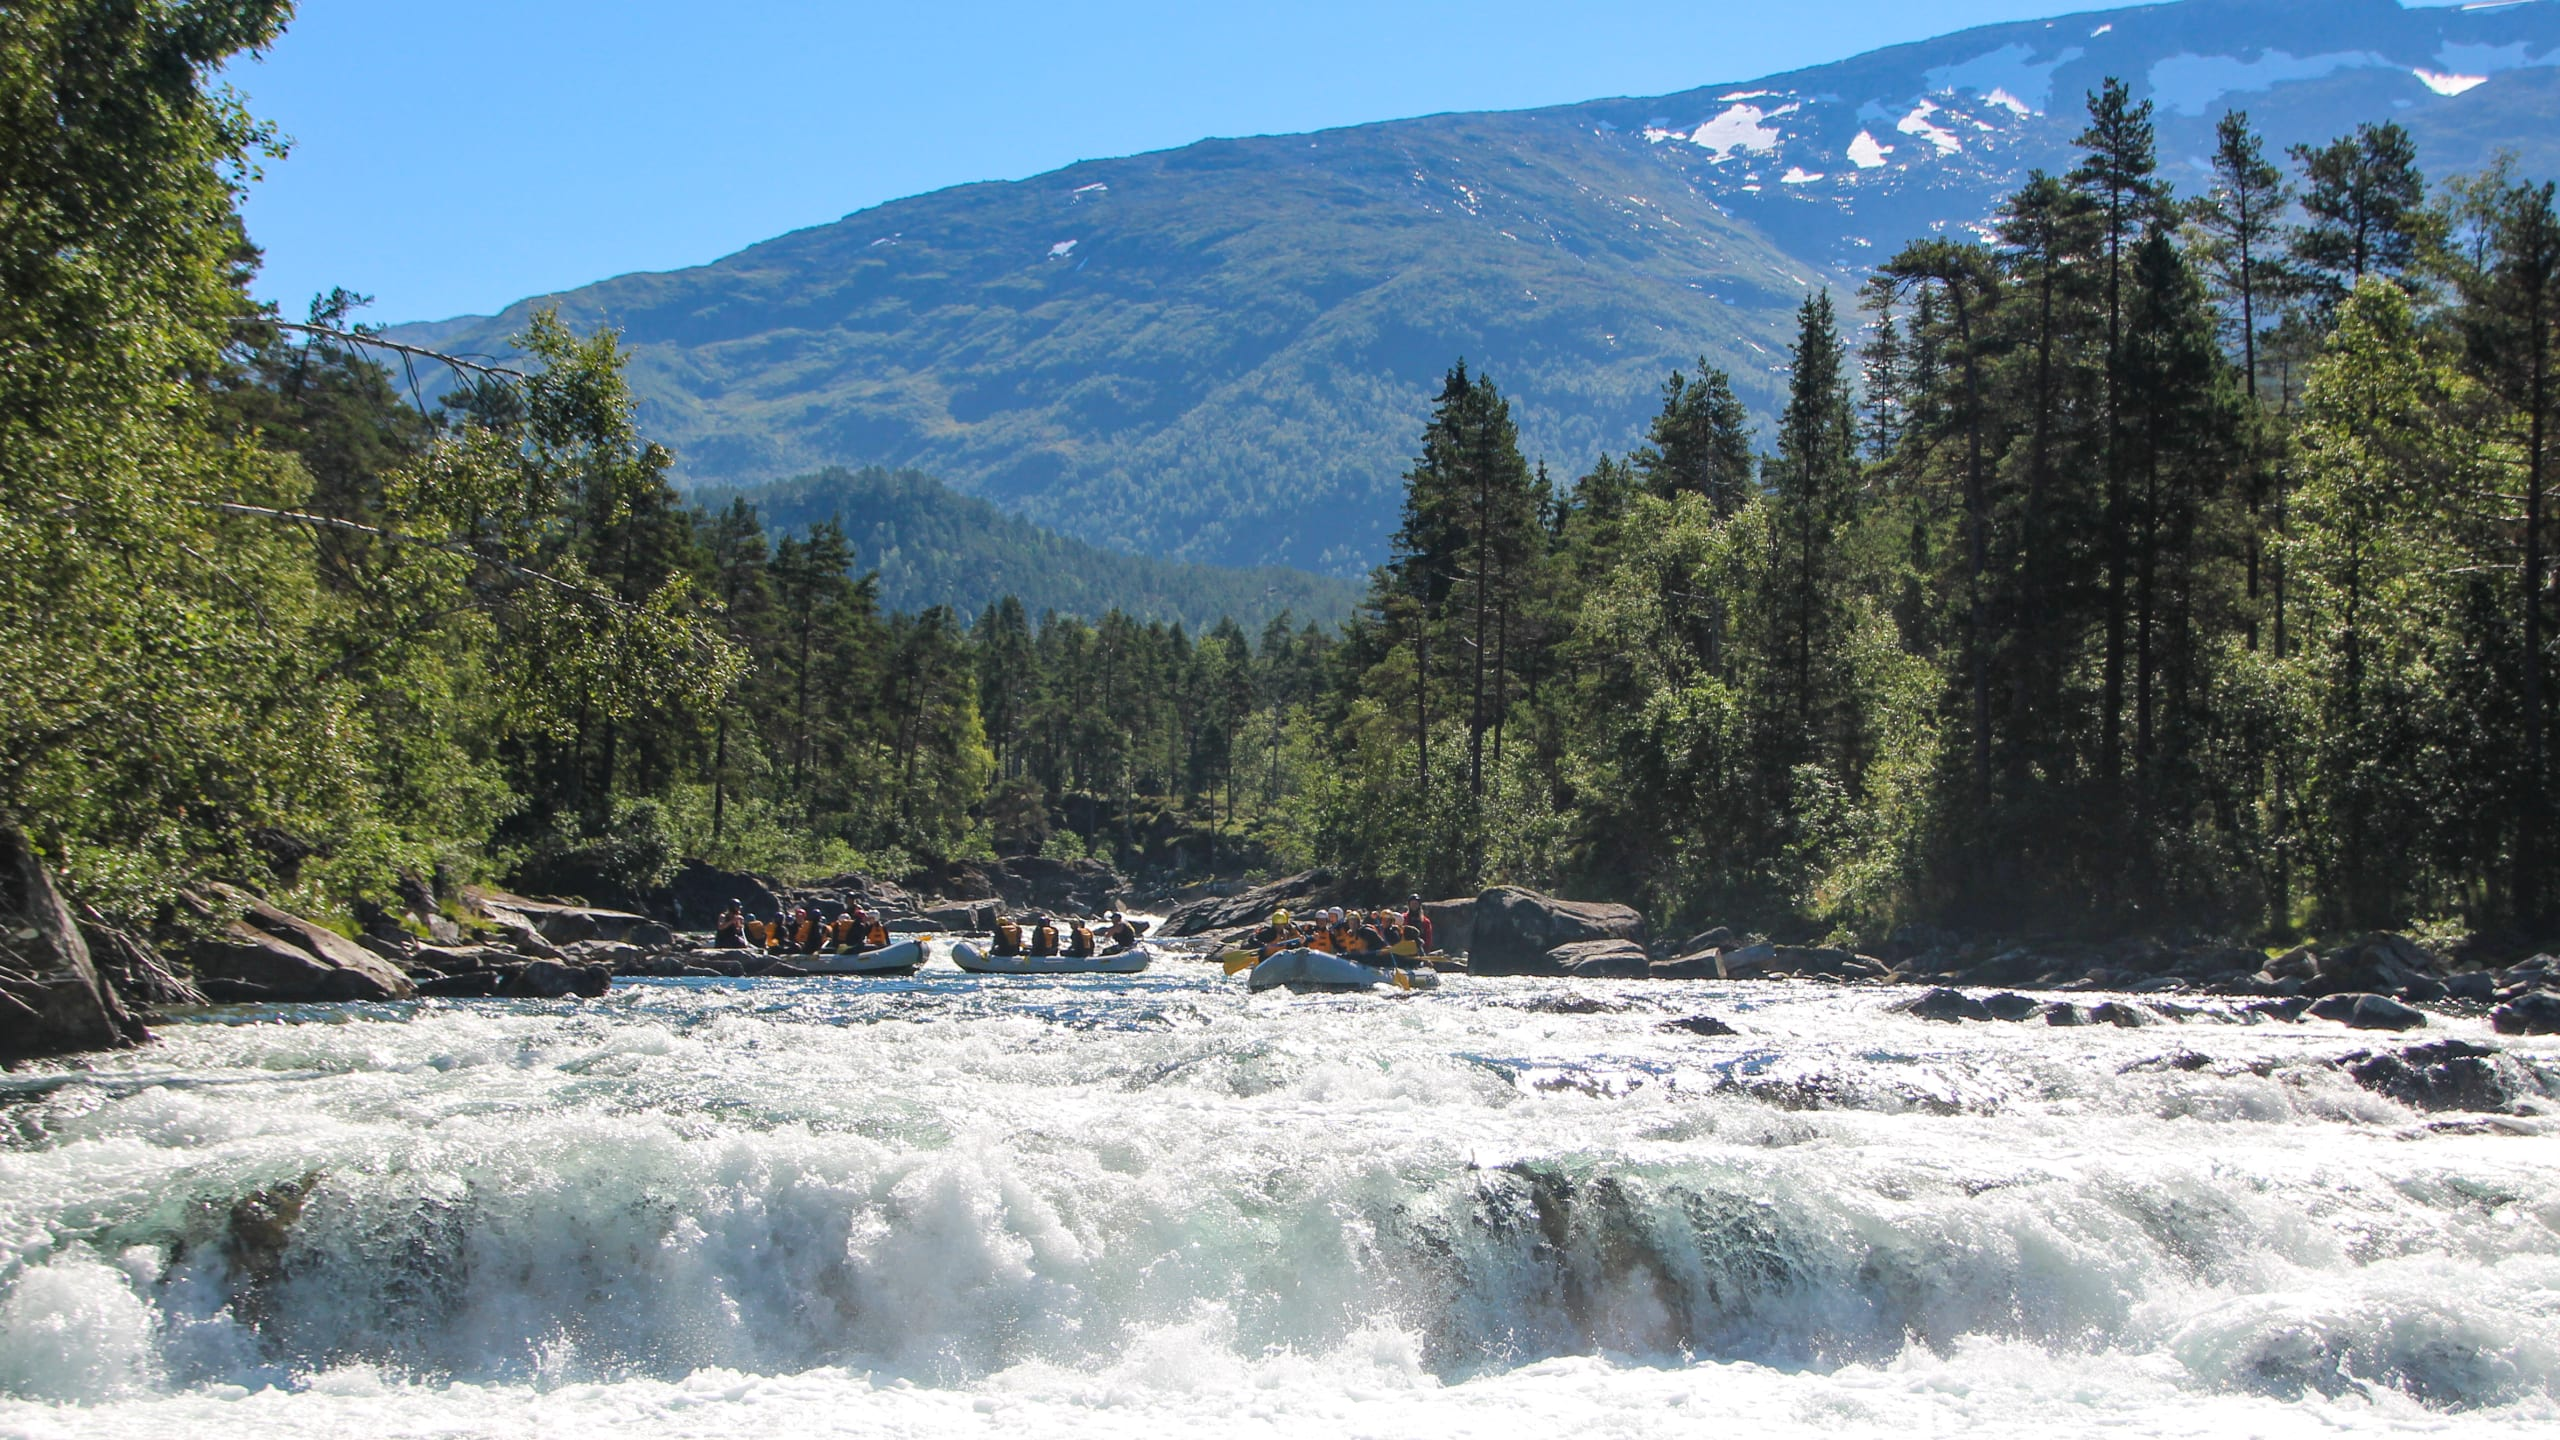 Wild rafting river at Voss